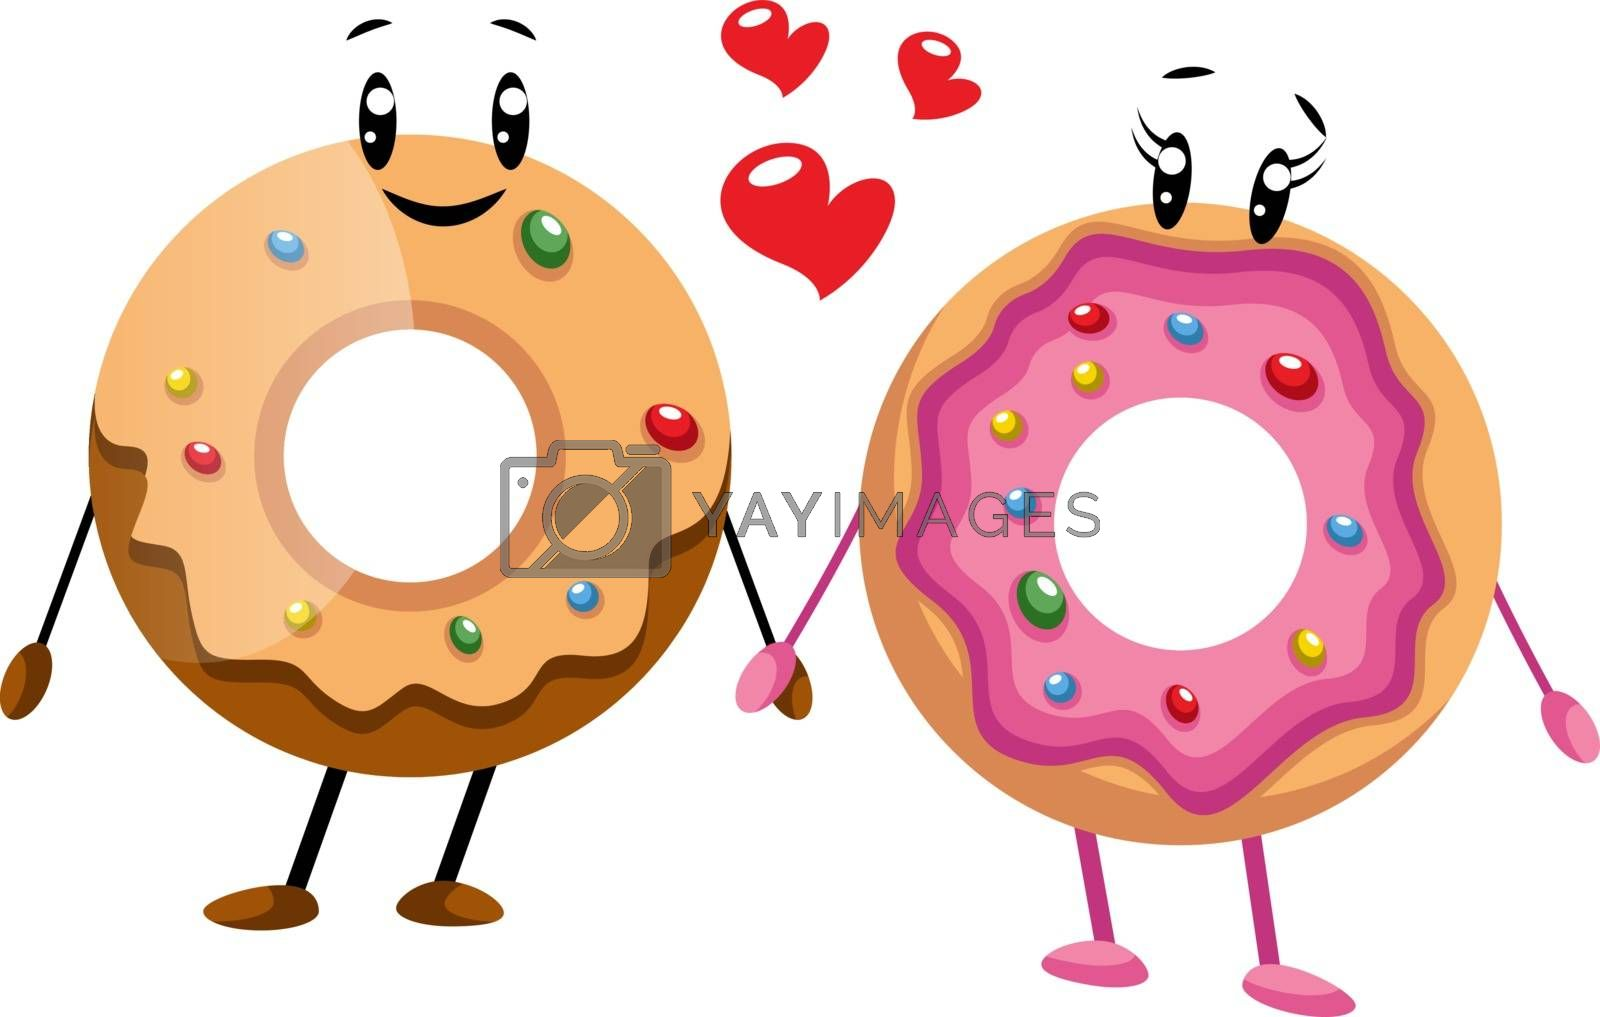 Royalty free image of Couple of donut in love illustration vector on white background by Morphart